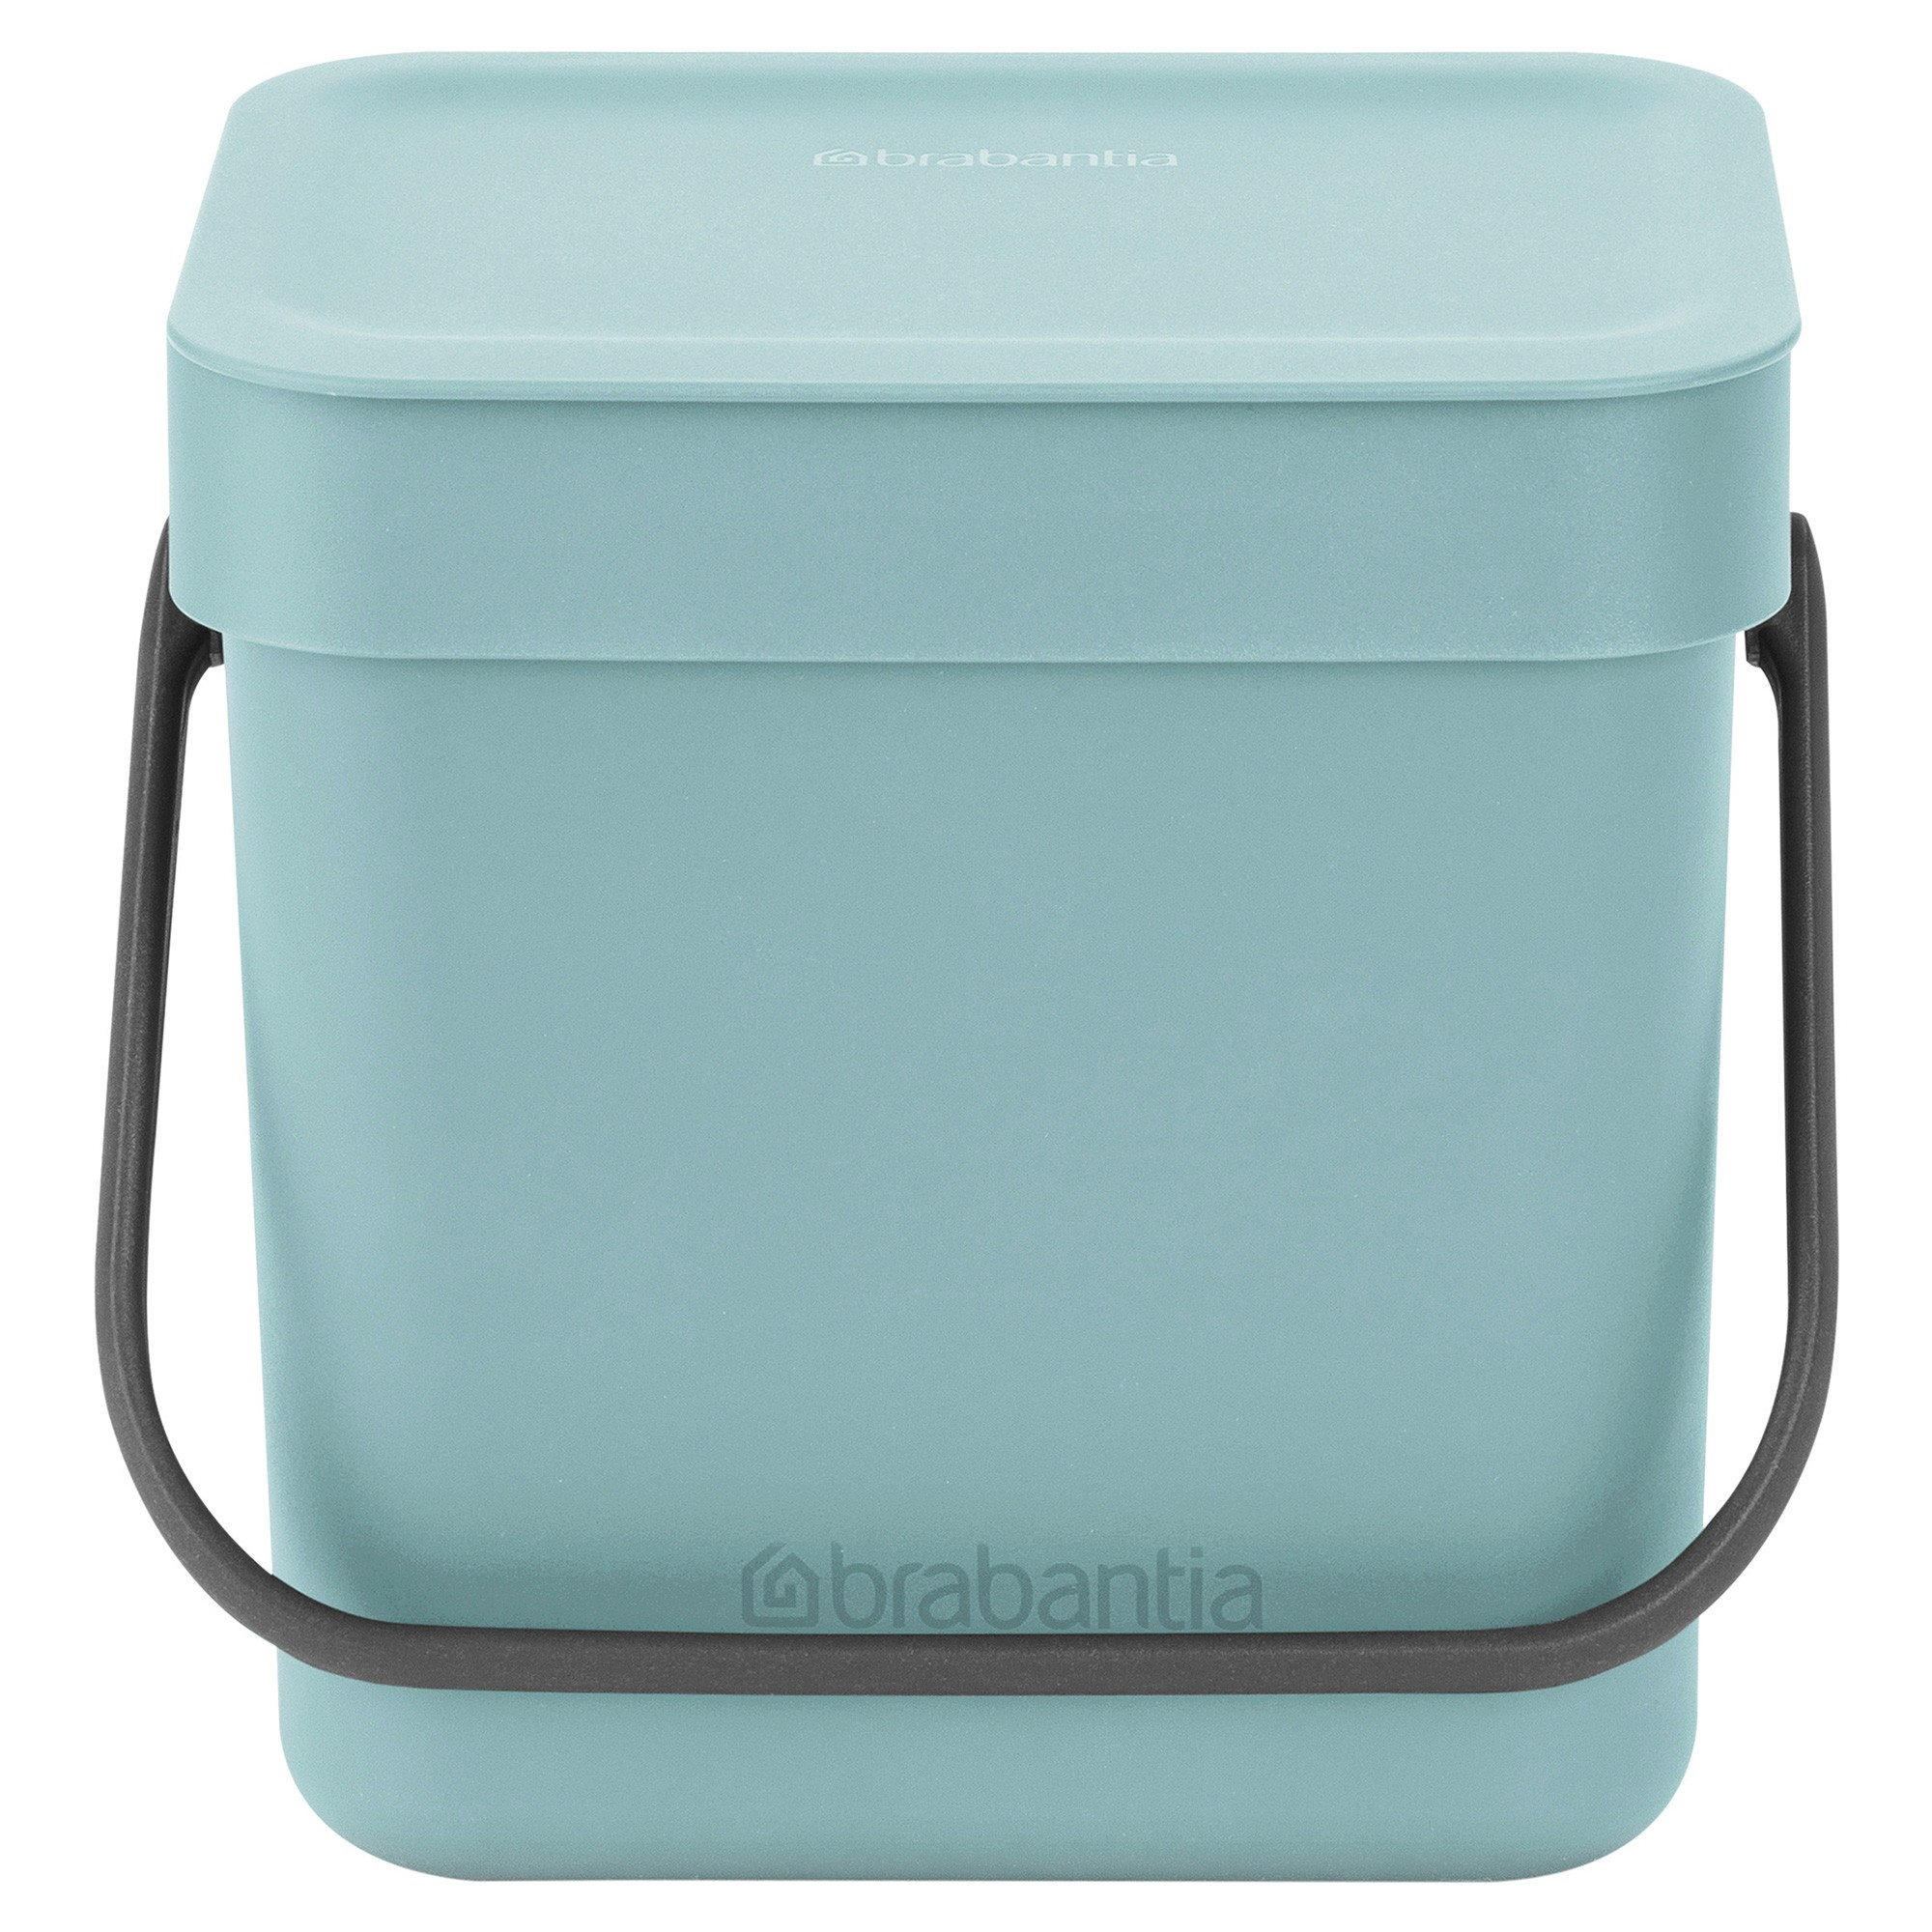 Brabantia Sort & Go Waste Bin, 3 Litre, Mint